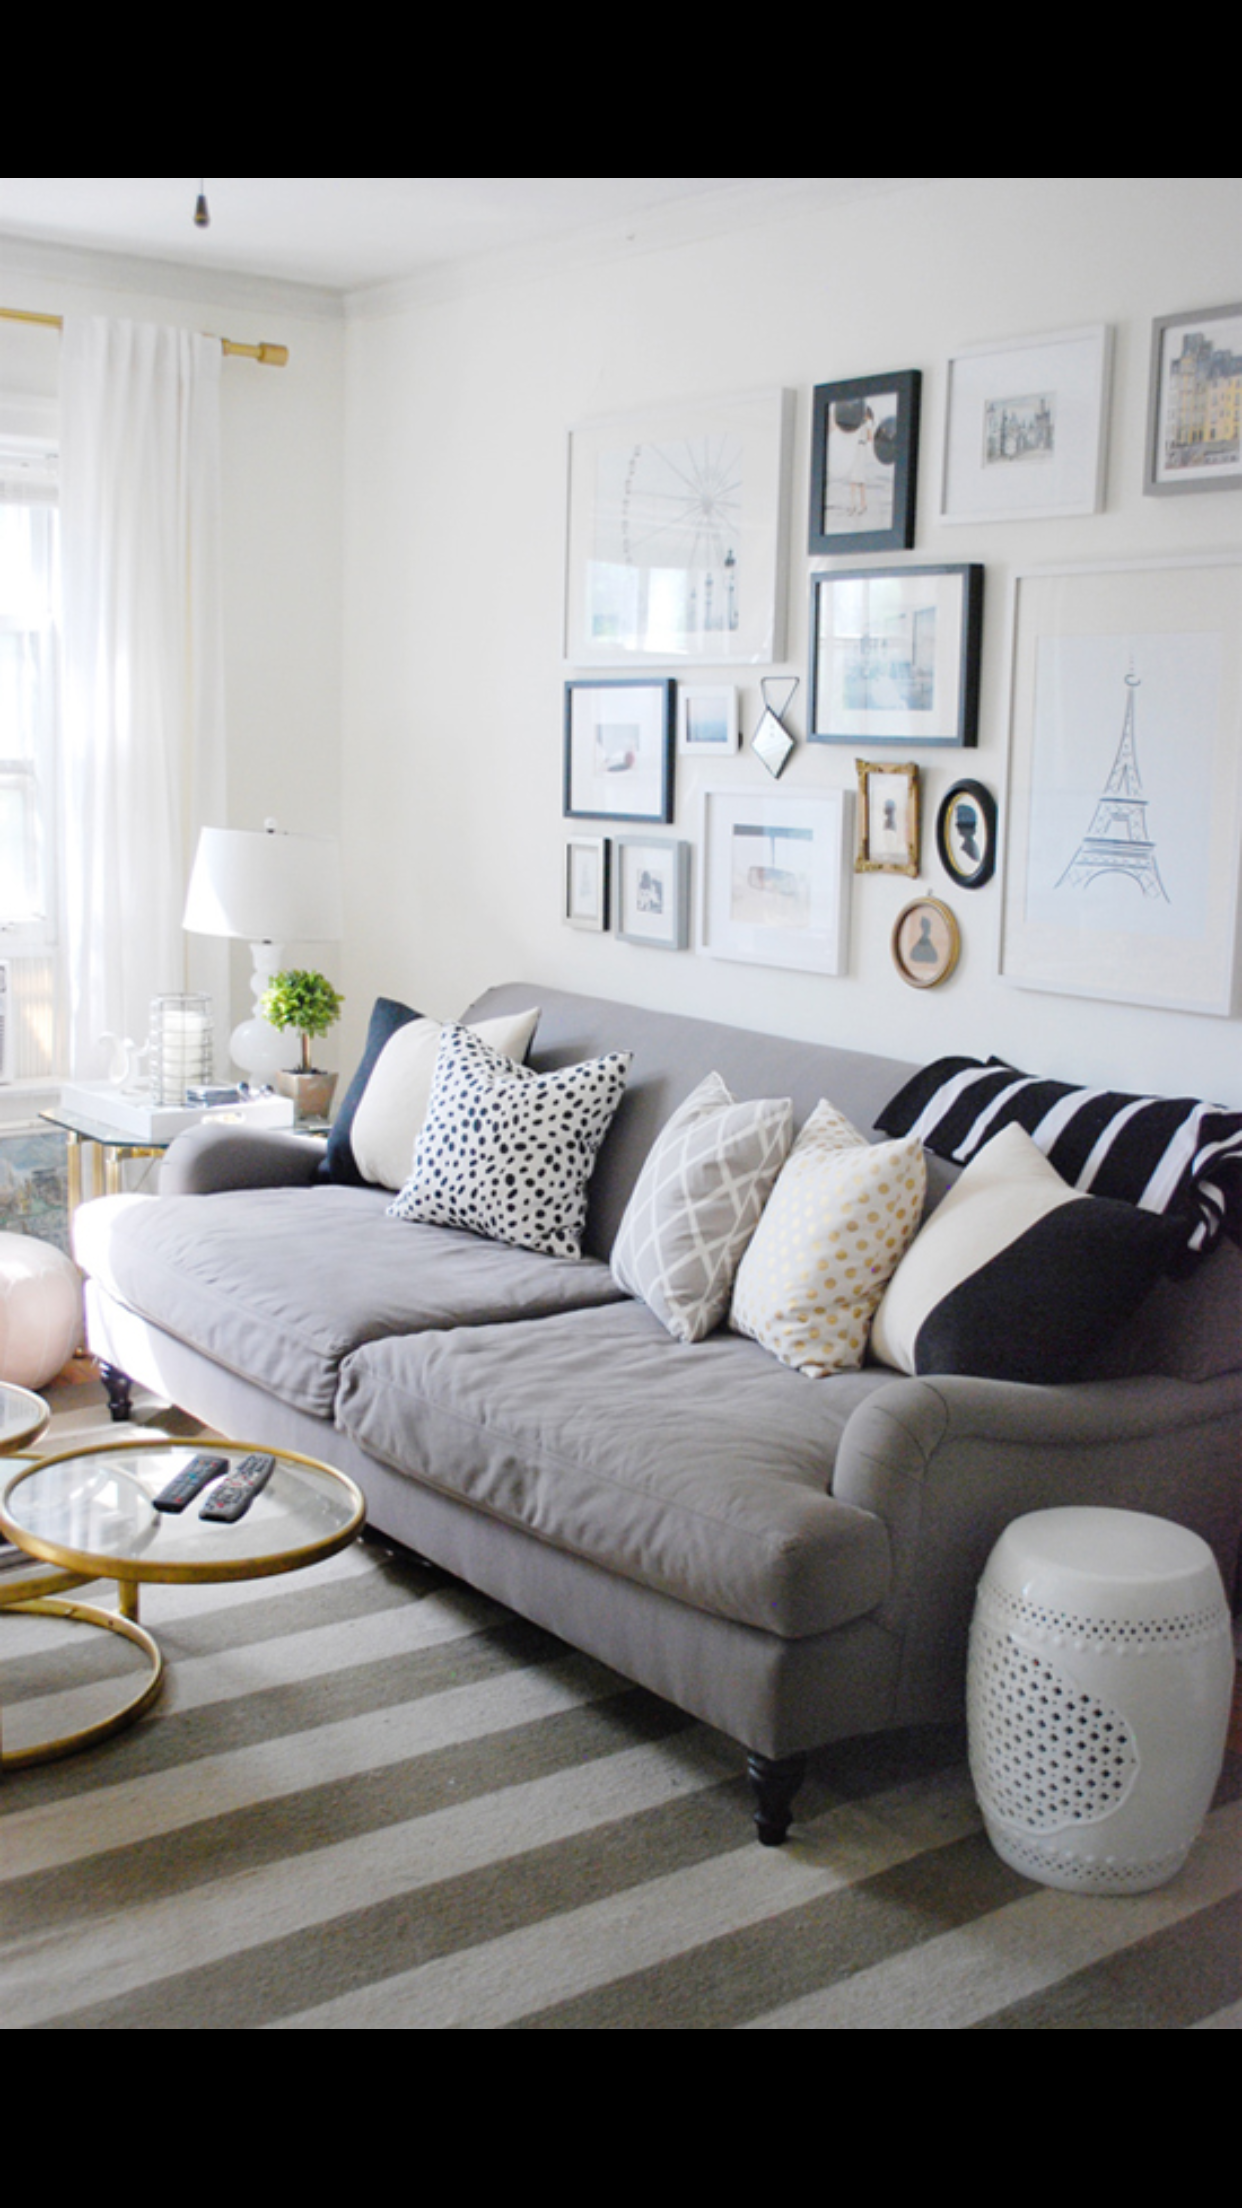 Pin by Bethaney Veitch on Home | Pinterest | Living room inspiration ...